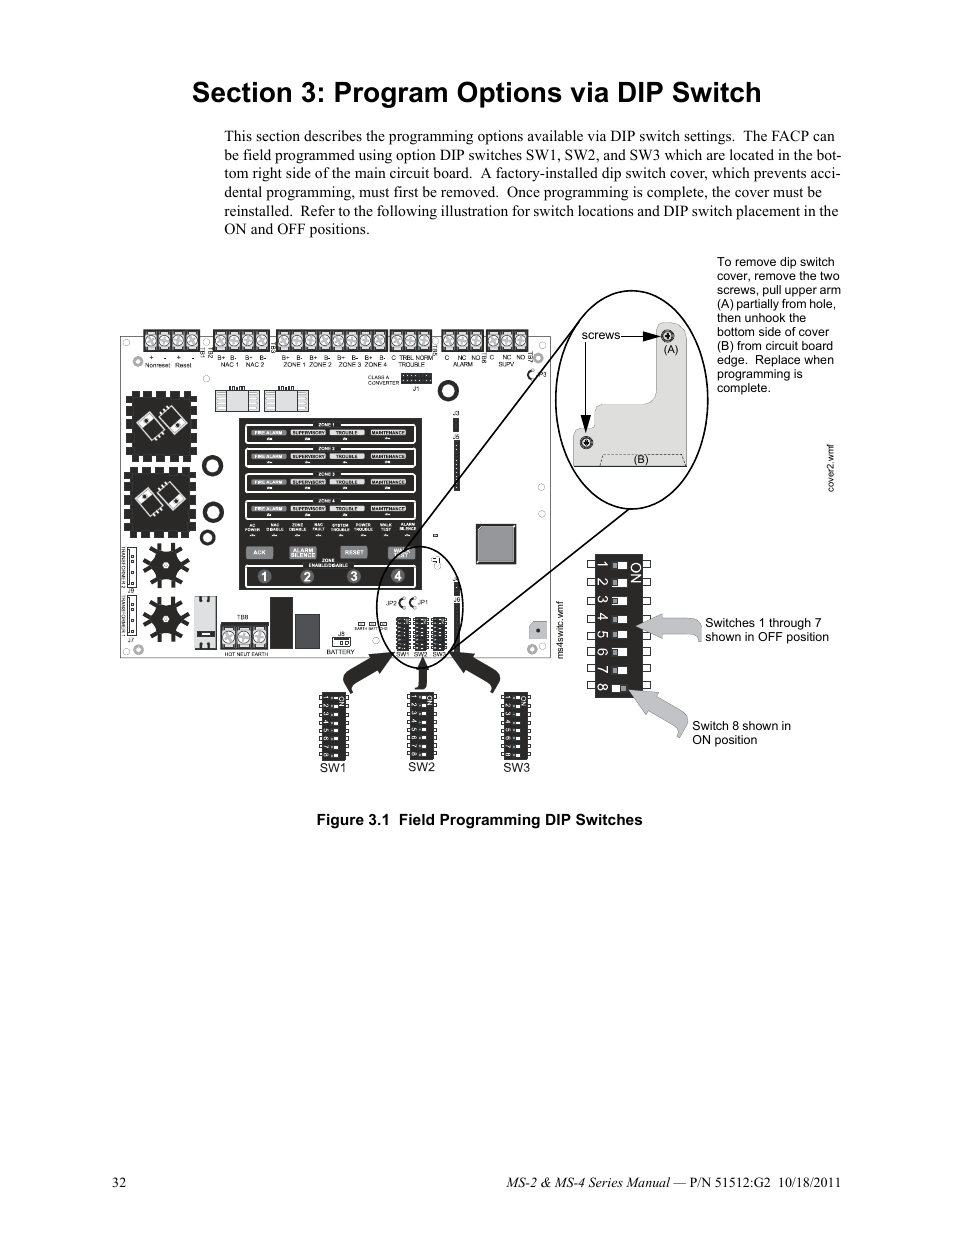 medium resolution of section 3 program options via dip switch fire lite ms 4e fire alarm control panel user manual page 32 56